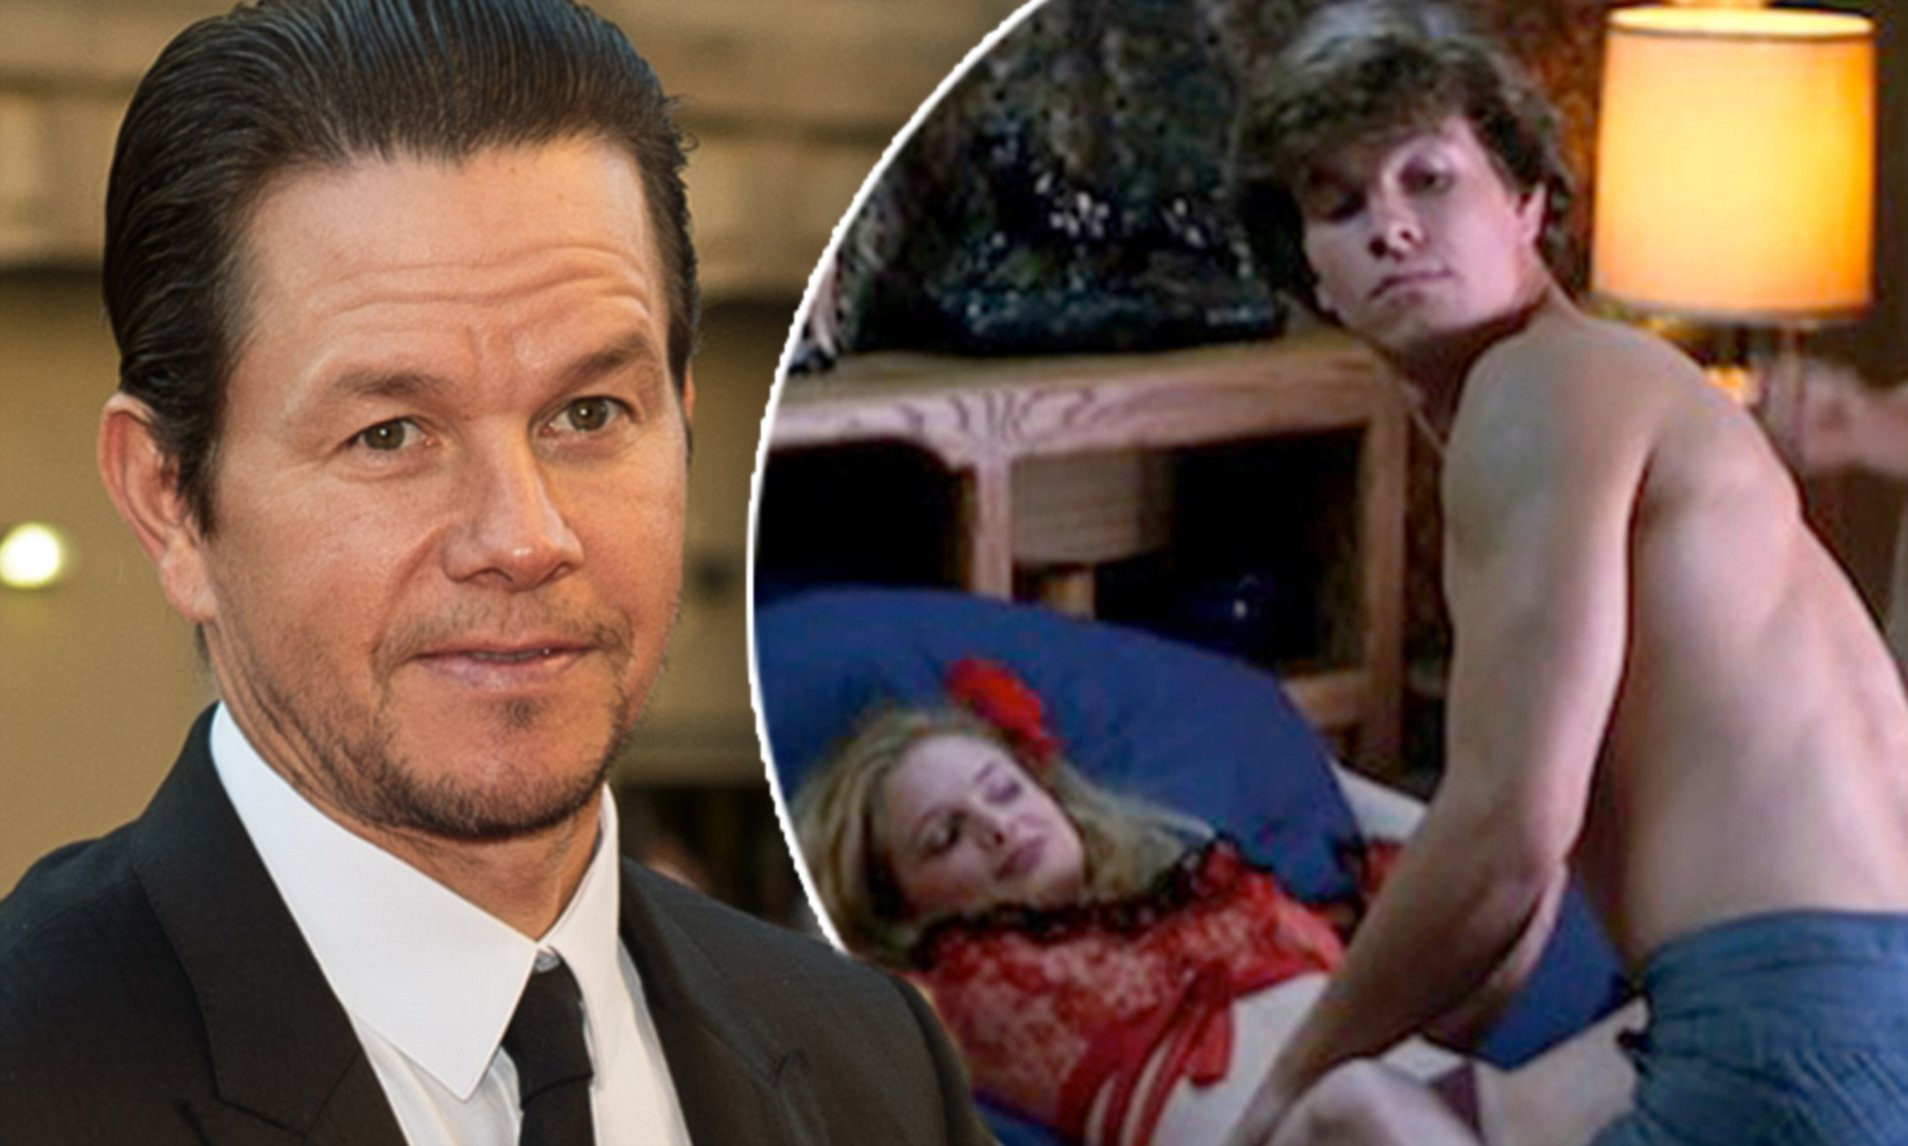 Boogie Nights: Mark Wahlberg ha tenuto il suo pene prostetico come souvenir - 360gradisud.it